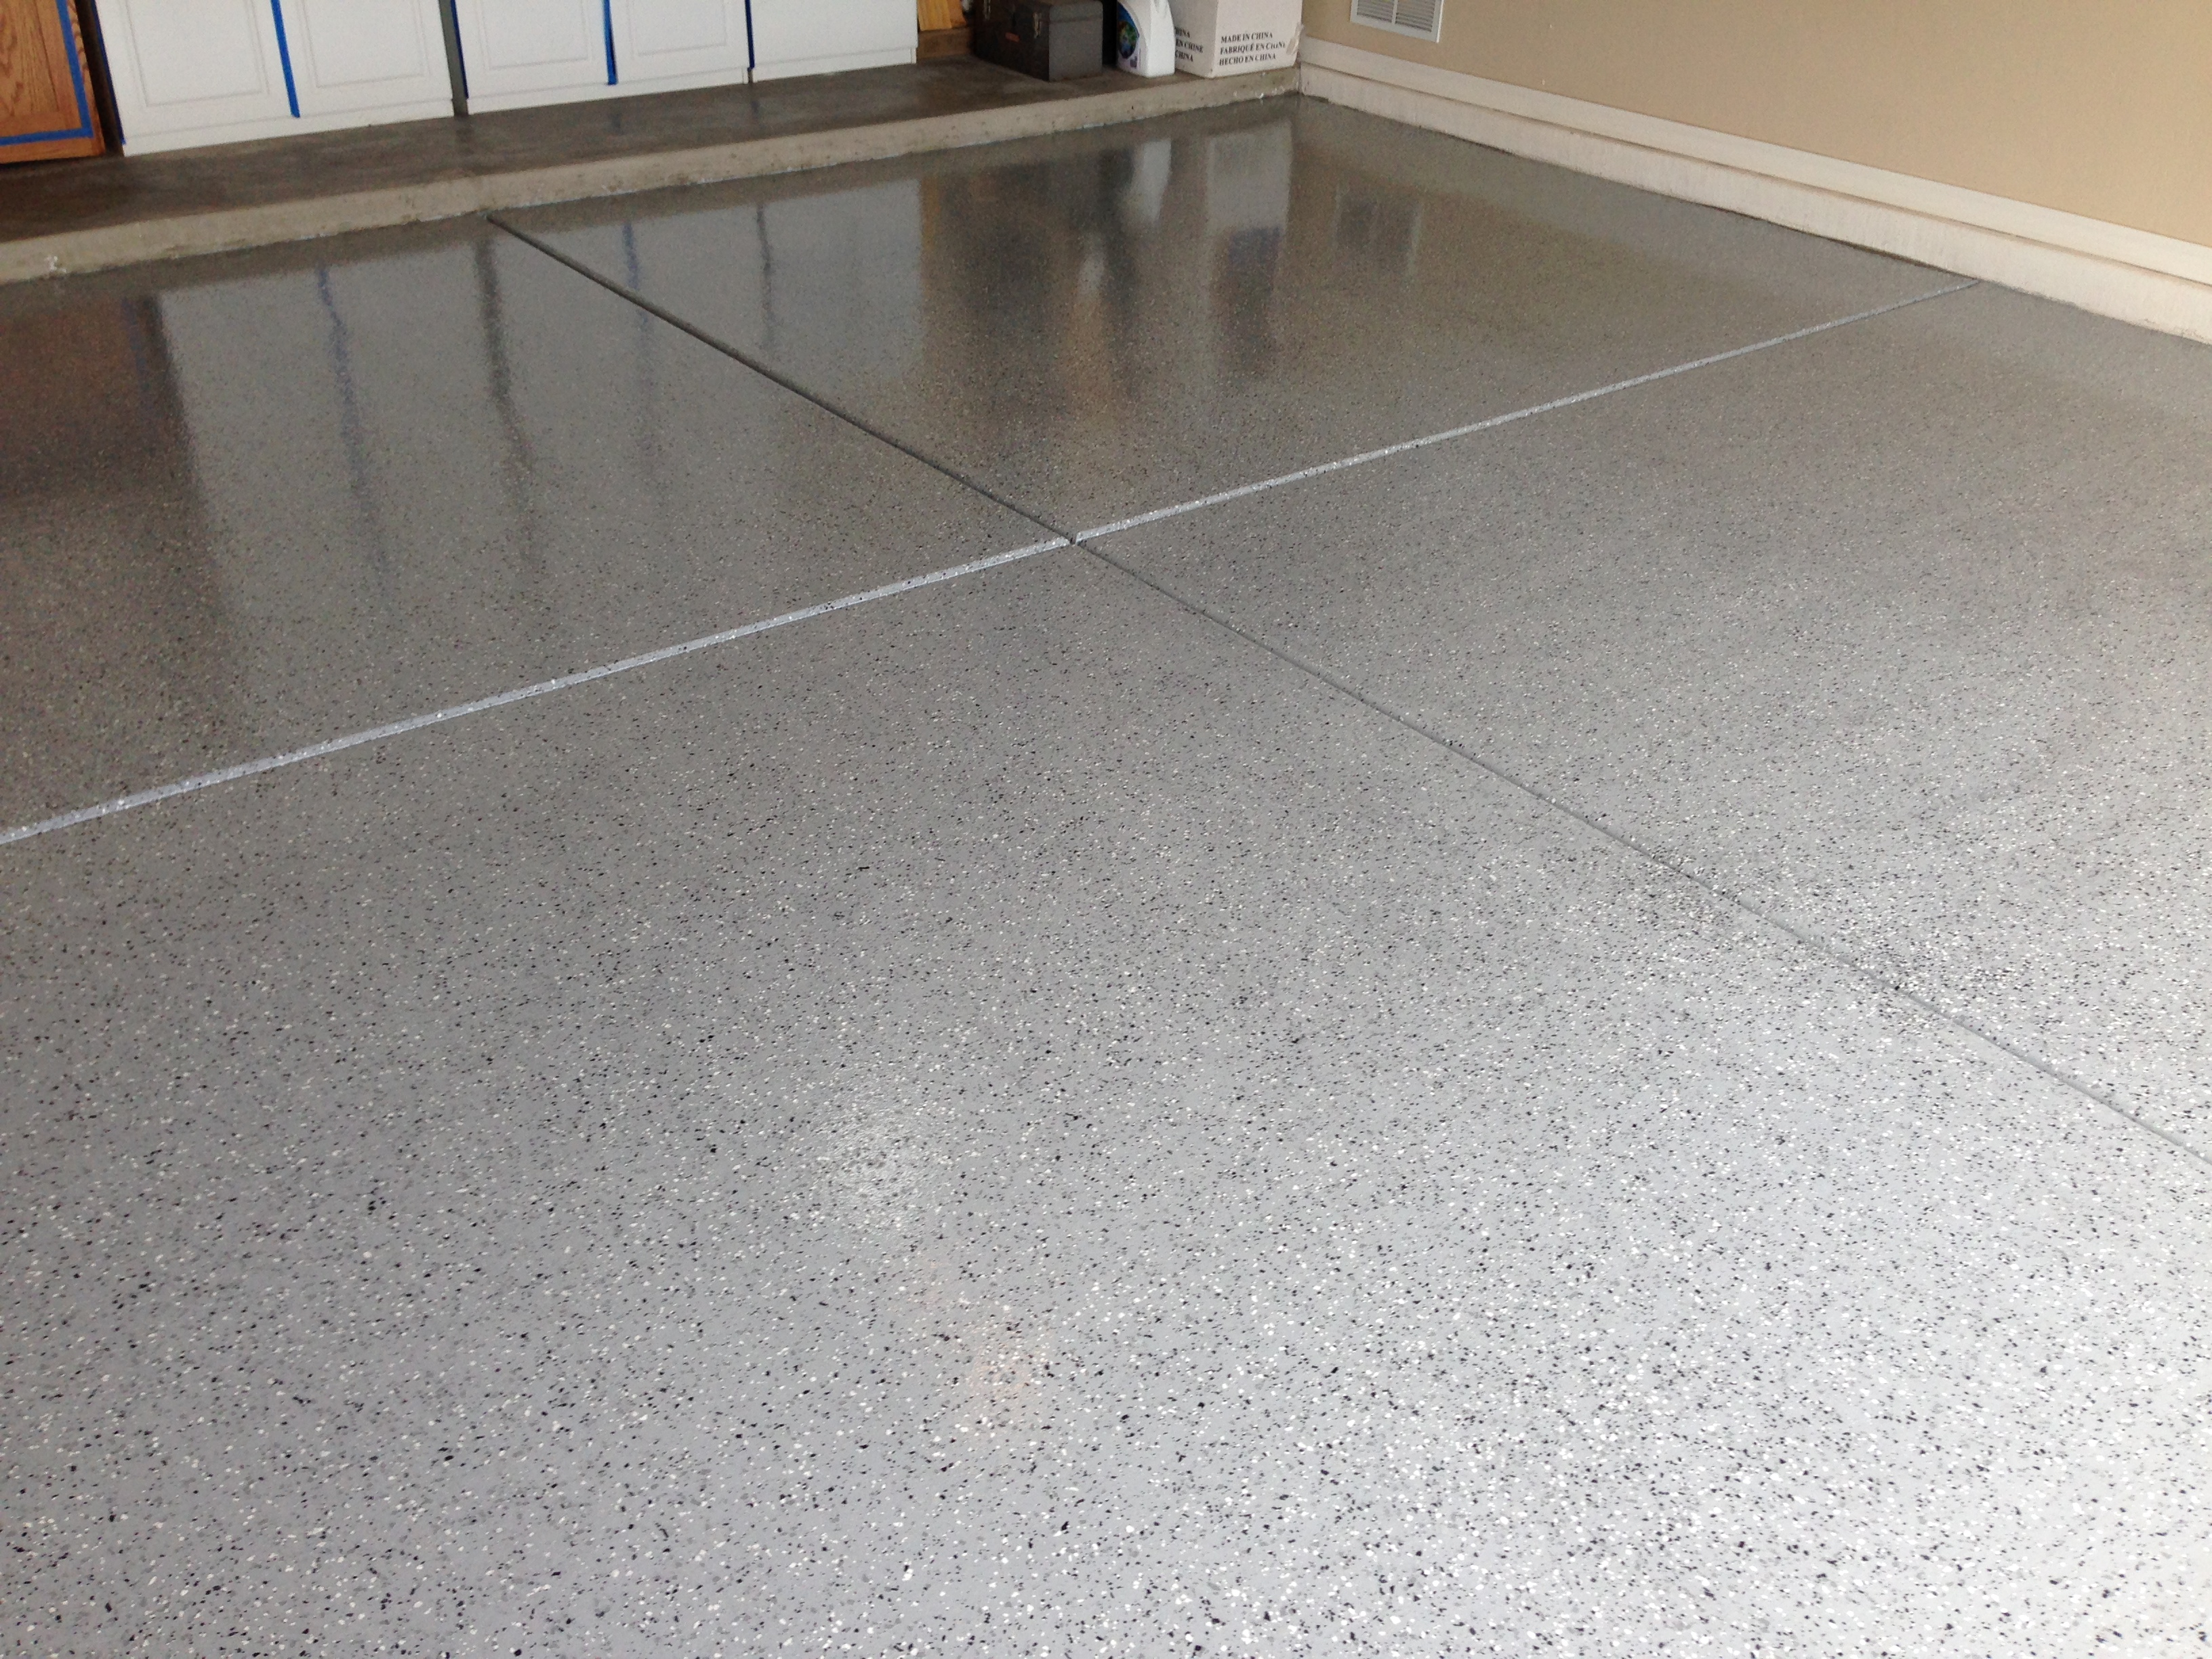 Garage Epoxy Tucson Garage Epoxy Flooring And Driveway Concrete Overlay Installation